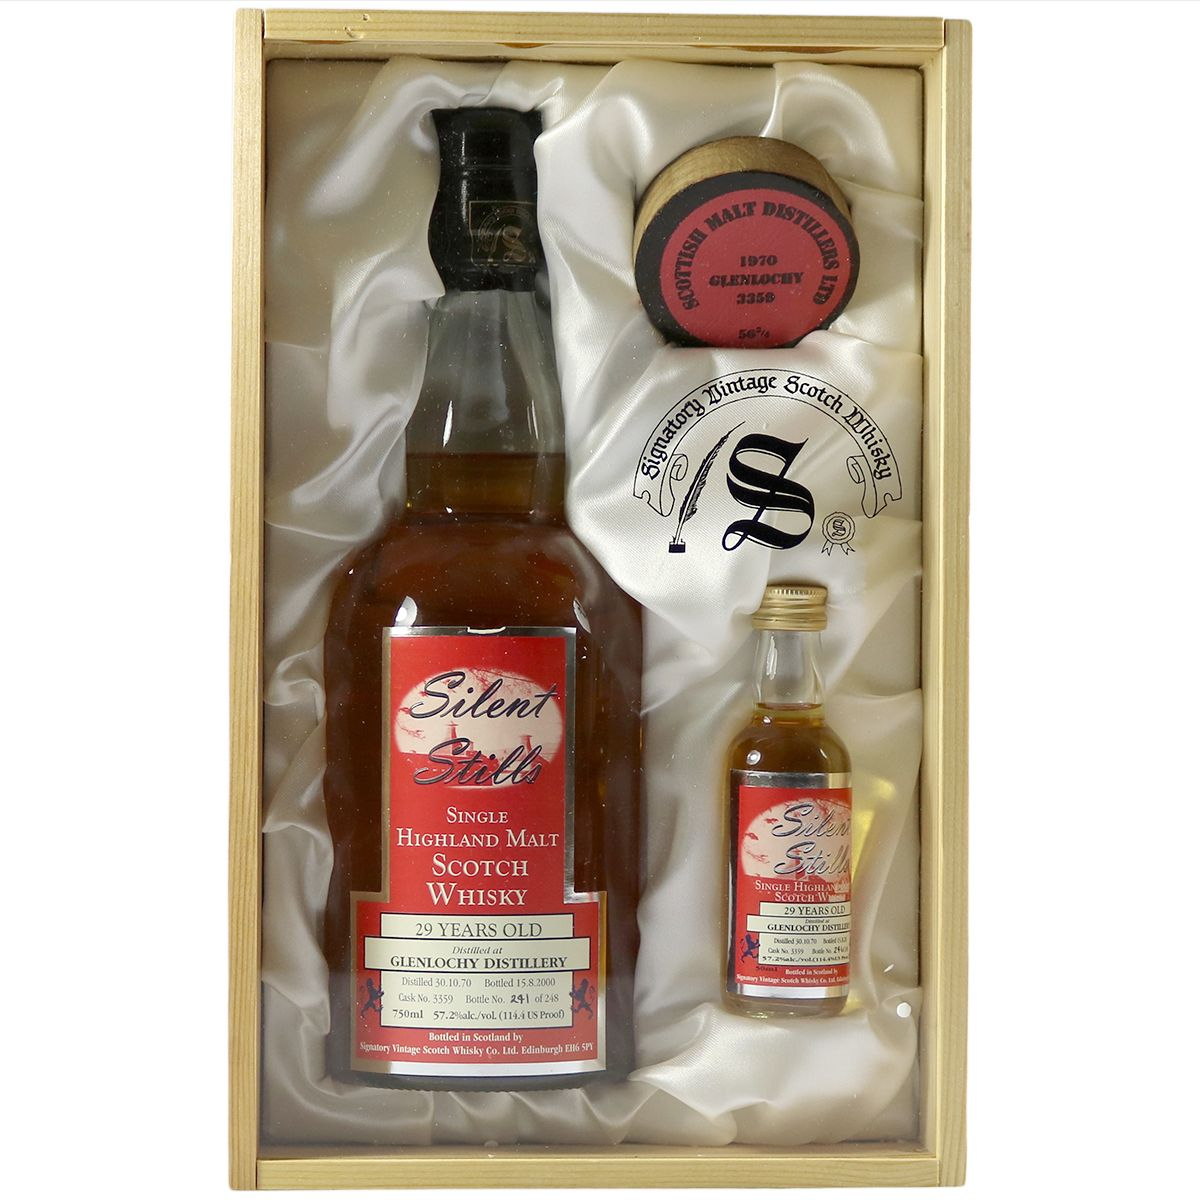 Glenlochy 1970 29 Year Old, Signatory Silent Stills | The Whisky Vault